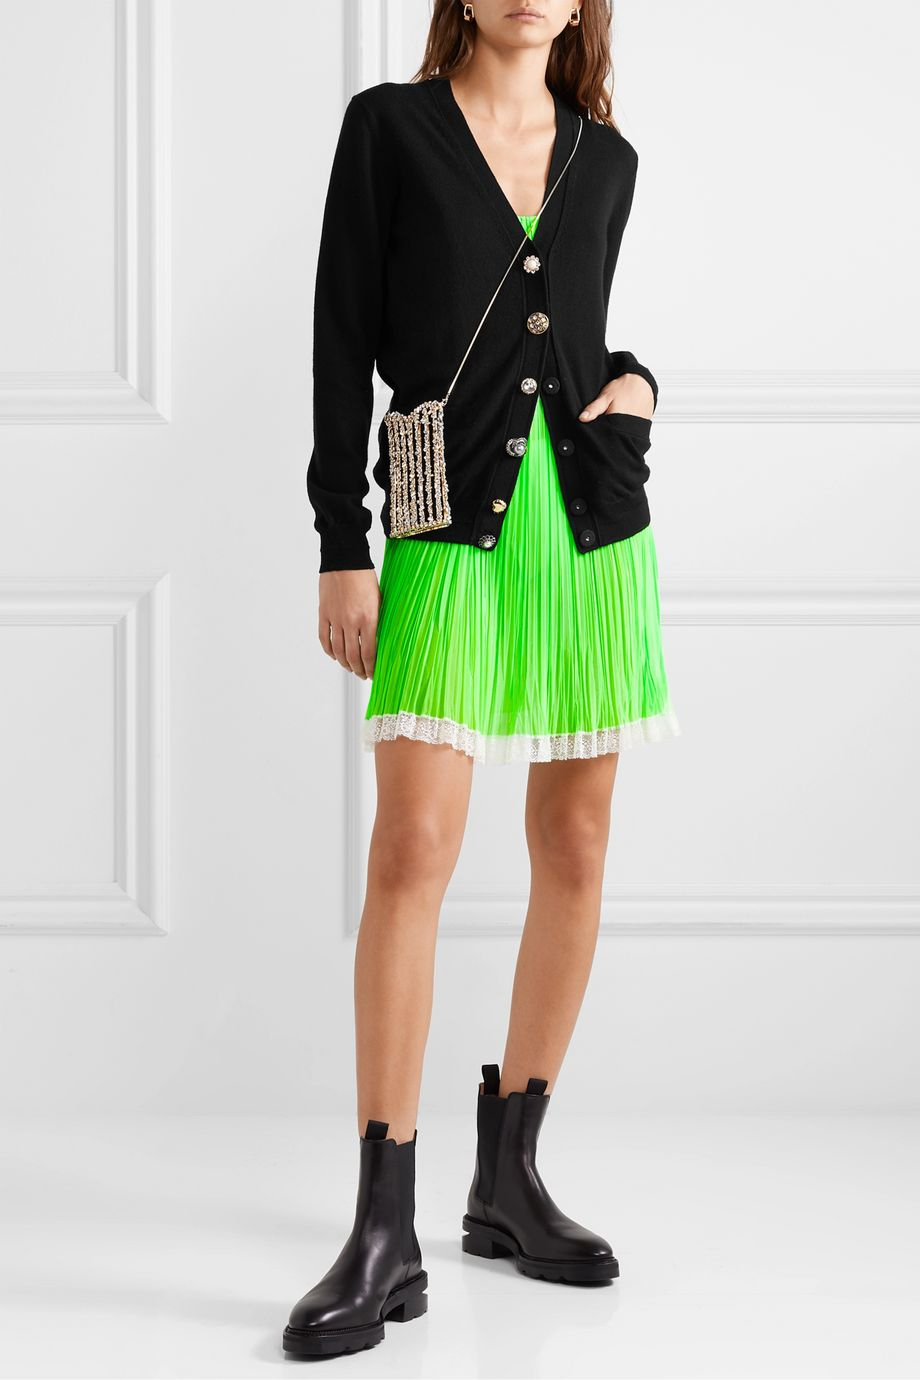 THE Marc Jacobs Embellished wool and cashmere cardigan